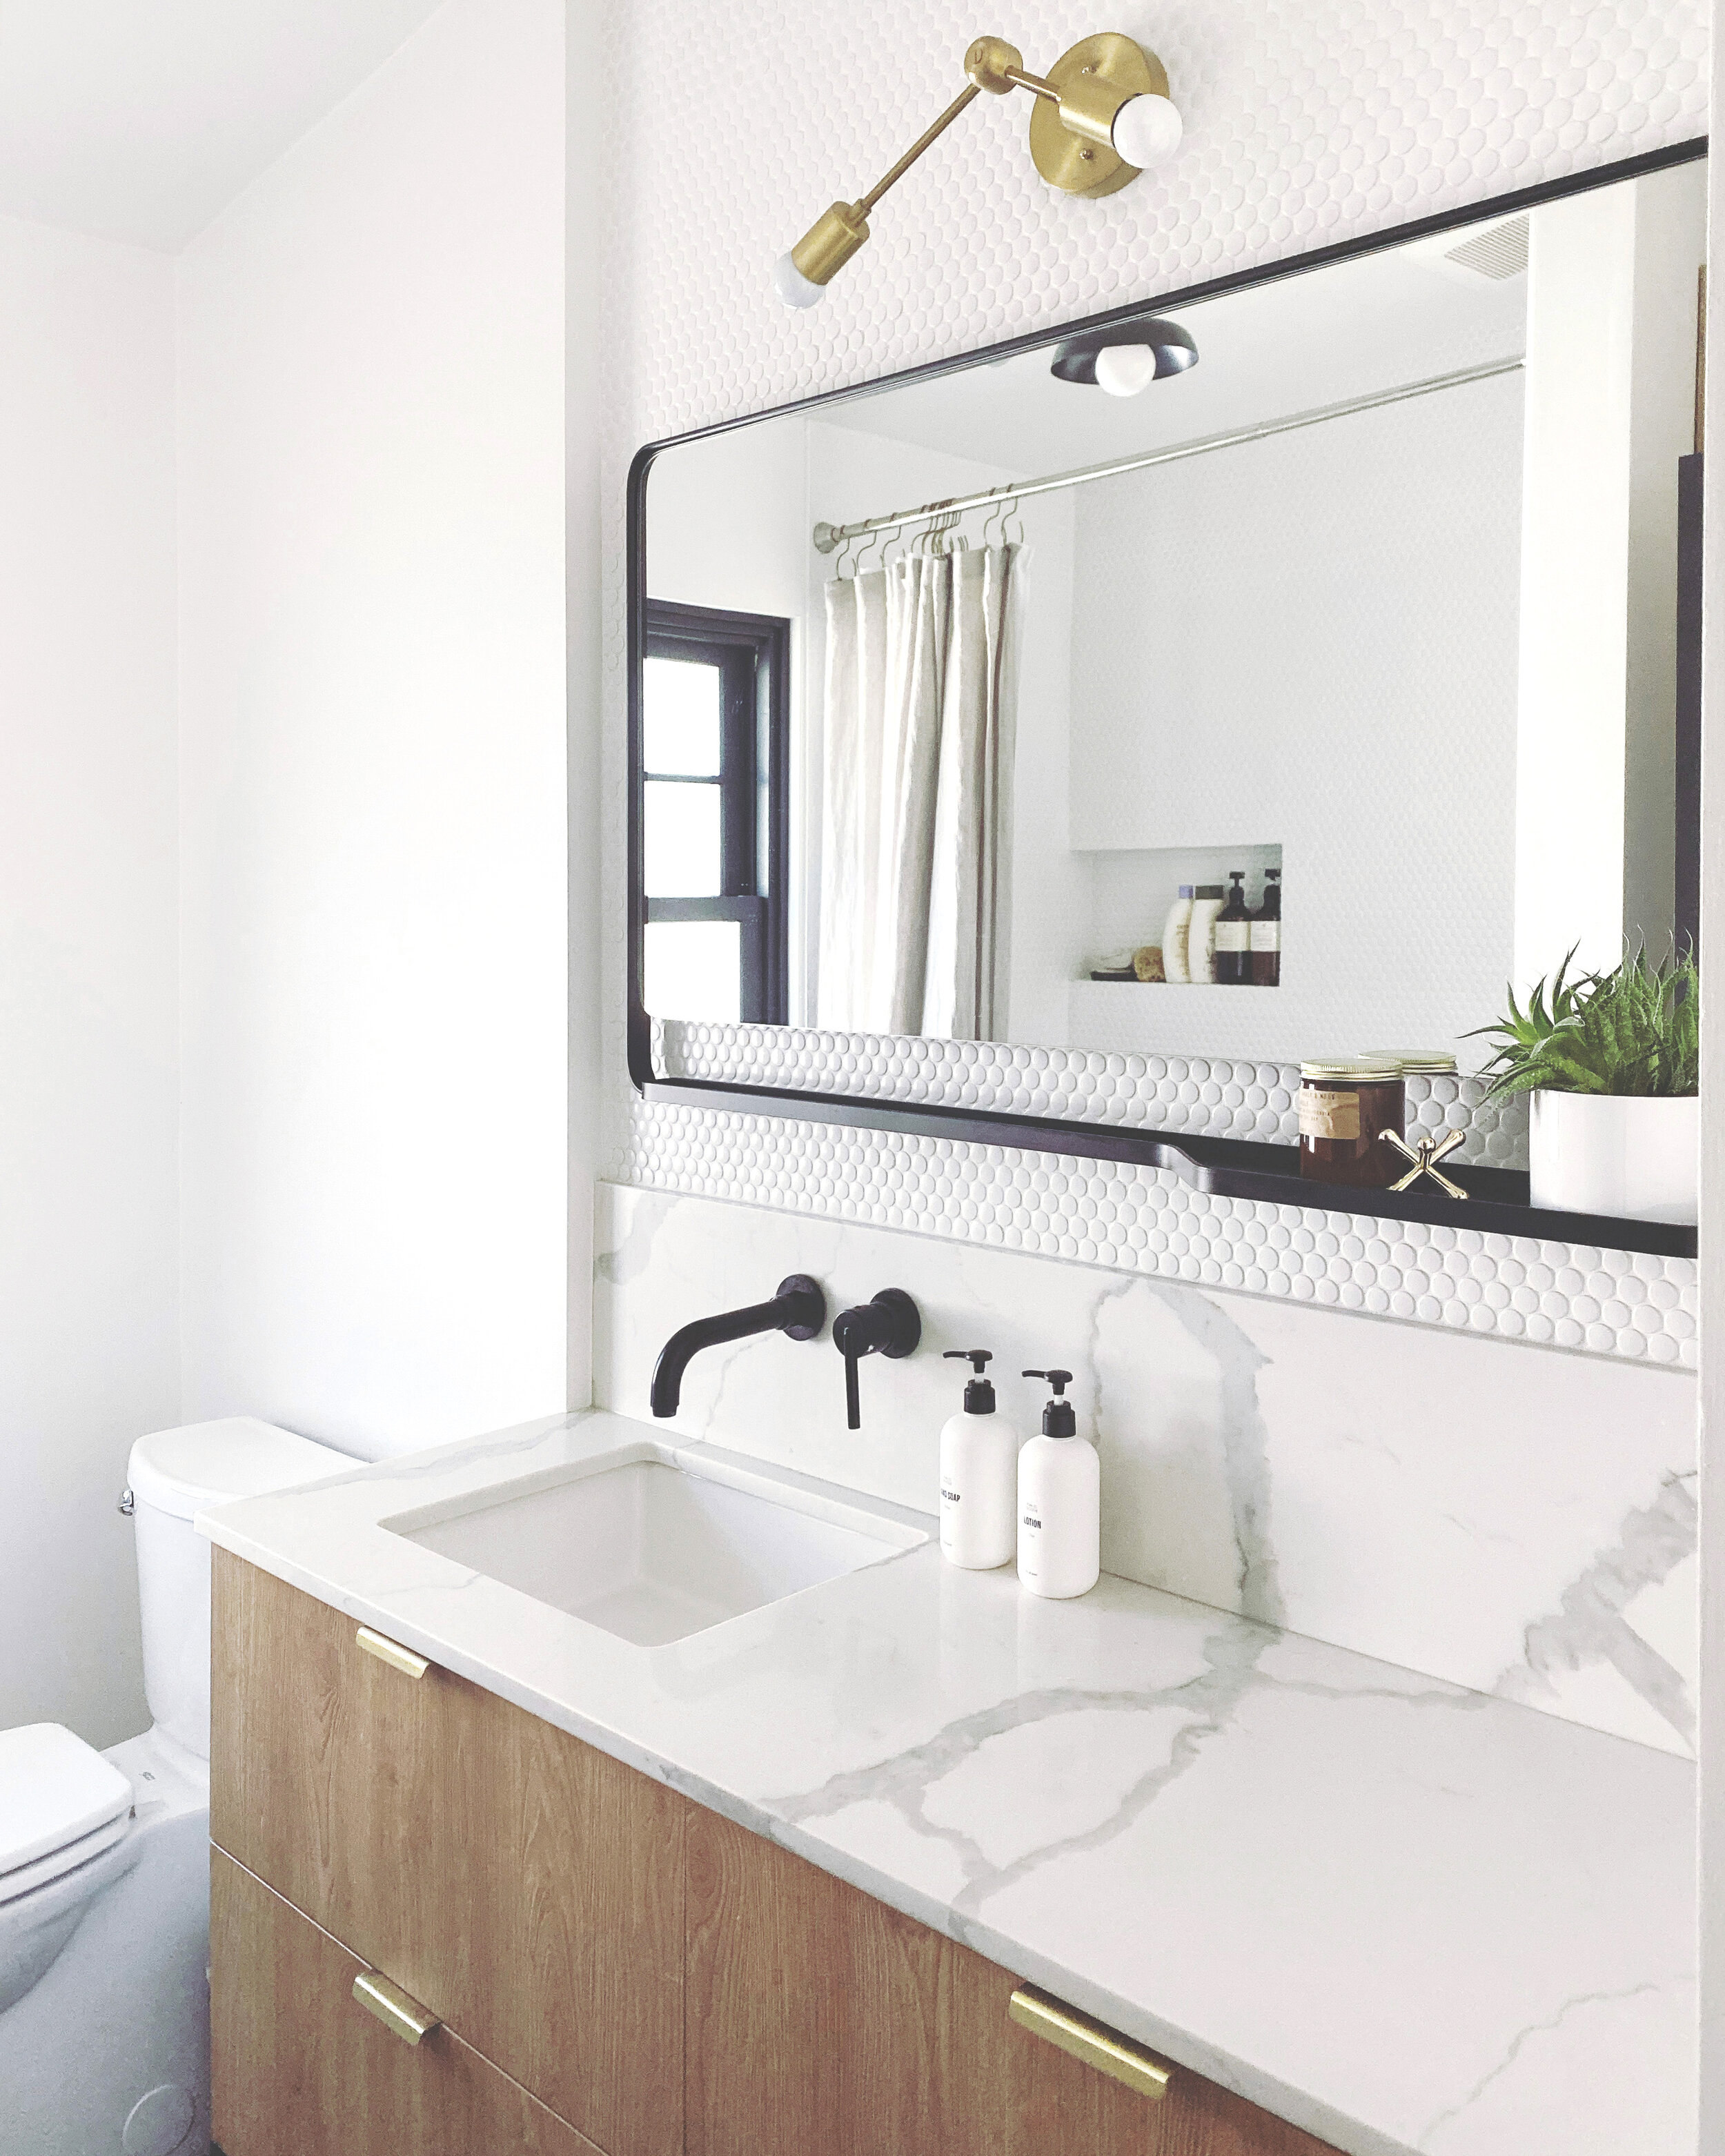 Bathroom Reveal + before and after — its leal love